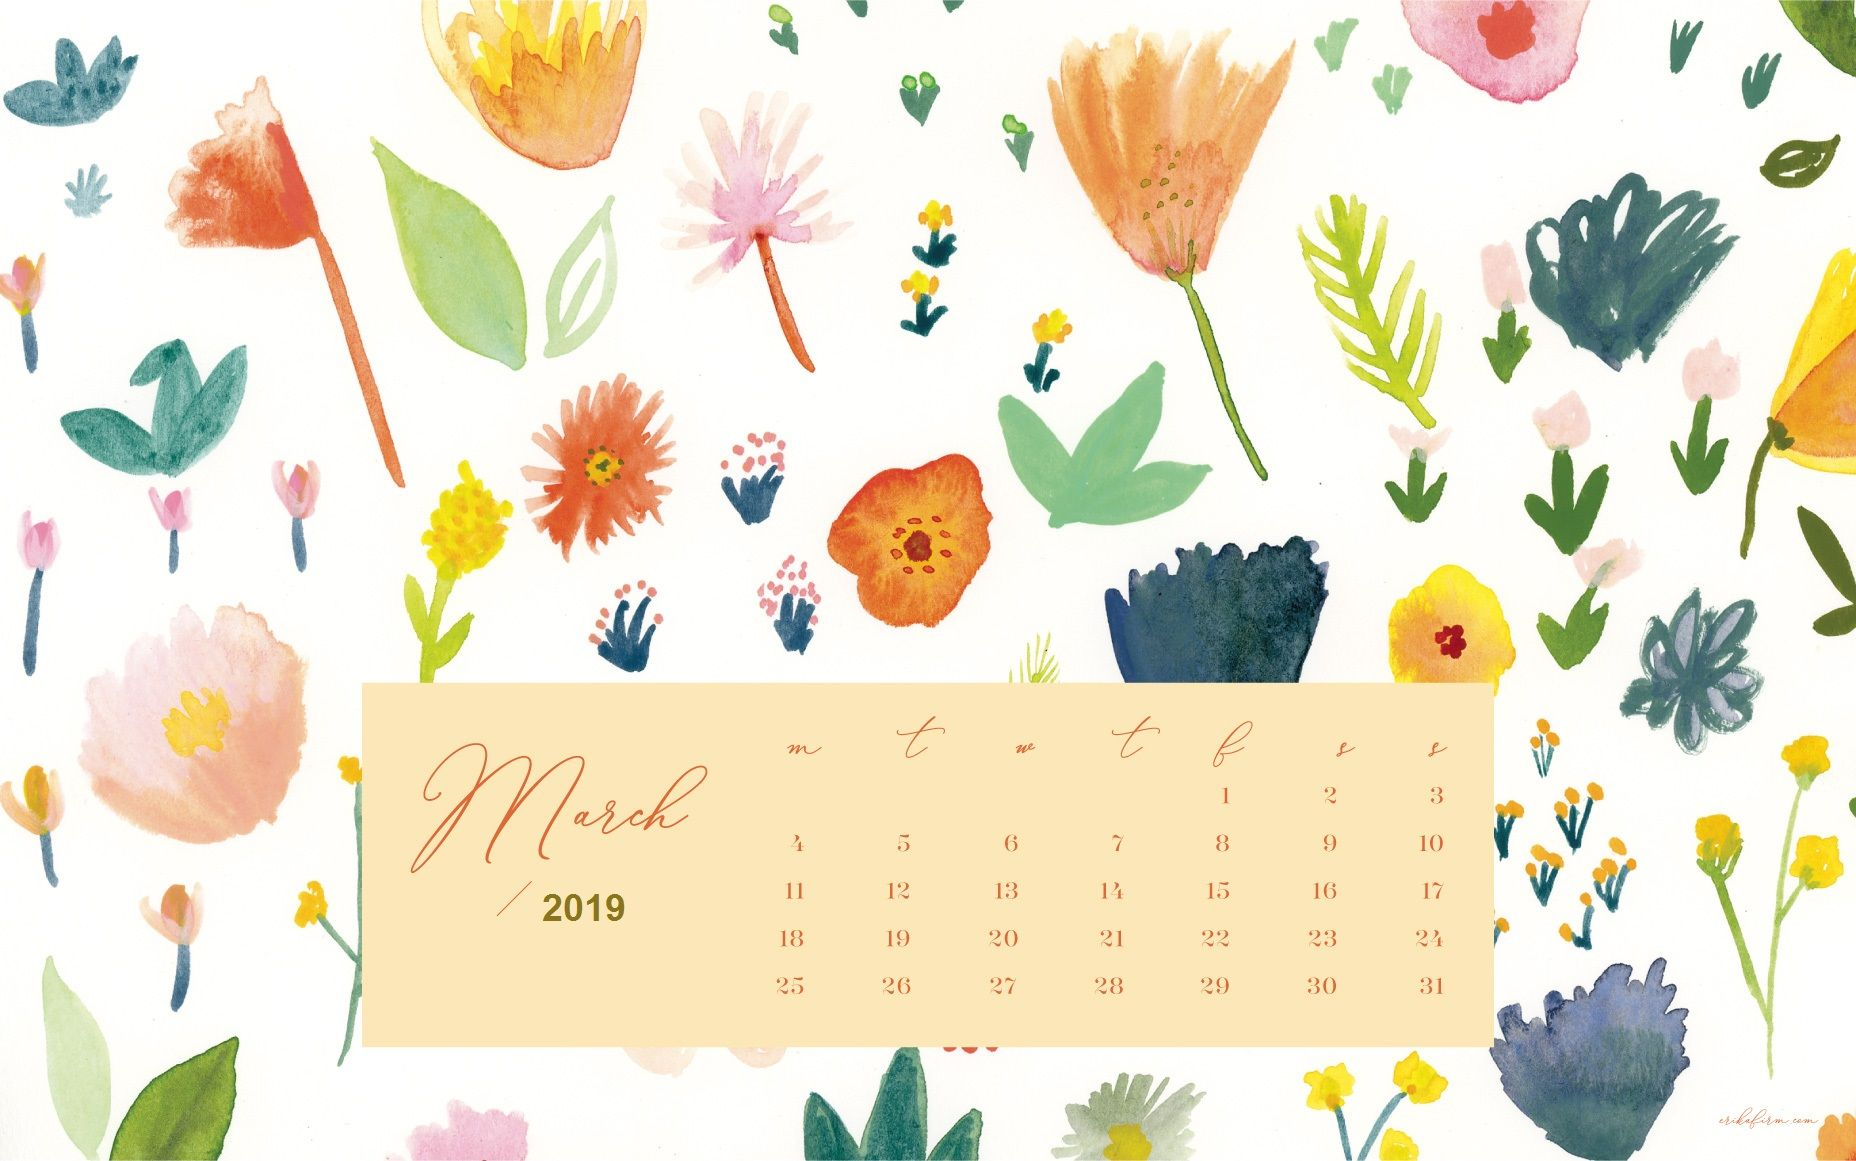 March 2019 Calendar Wallpaper For Desktop Laptop Iphone